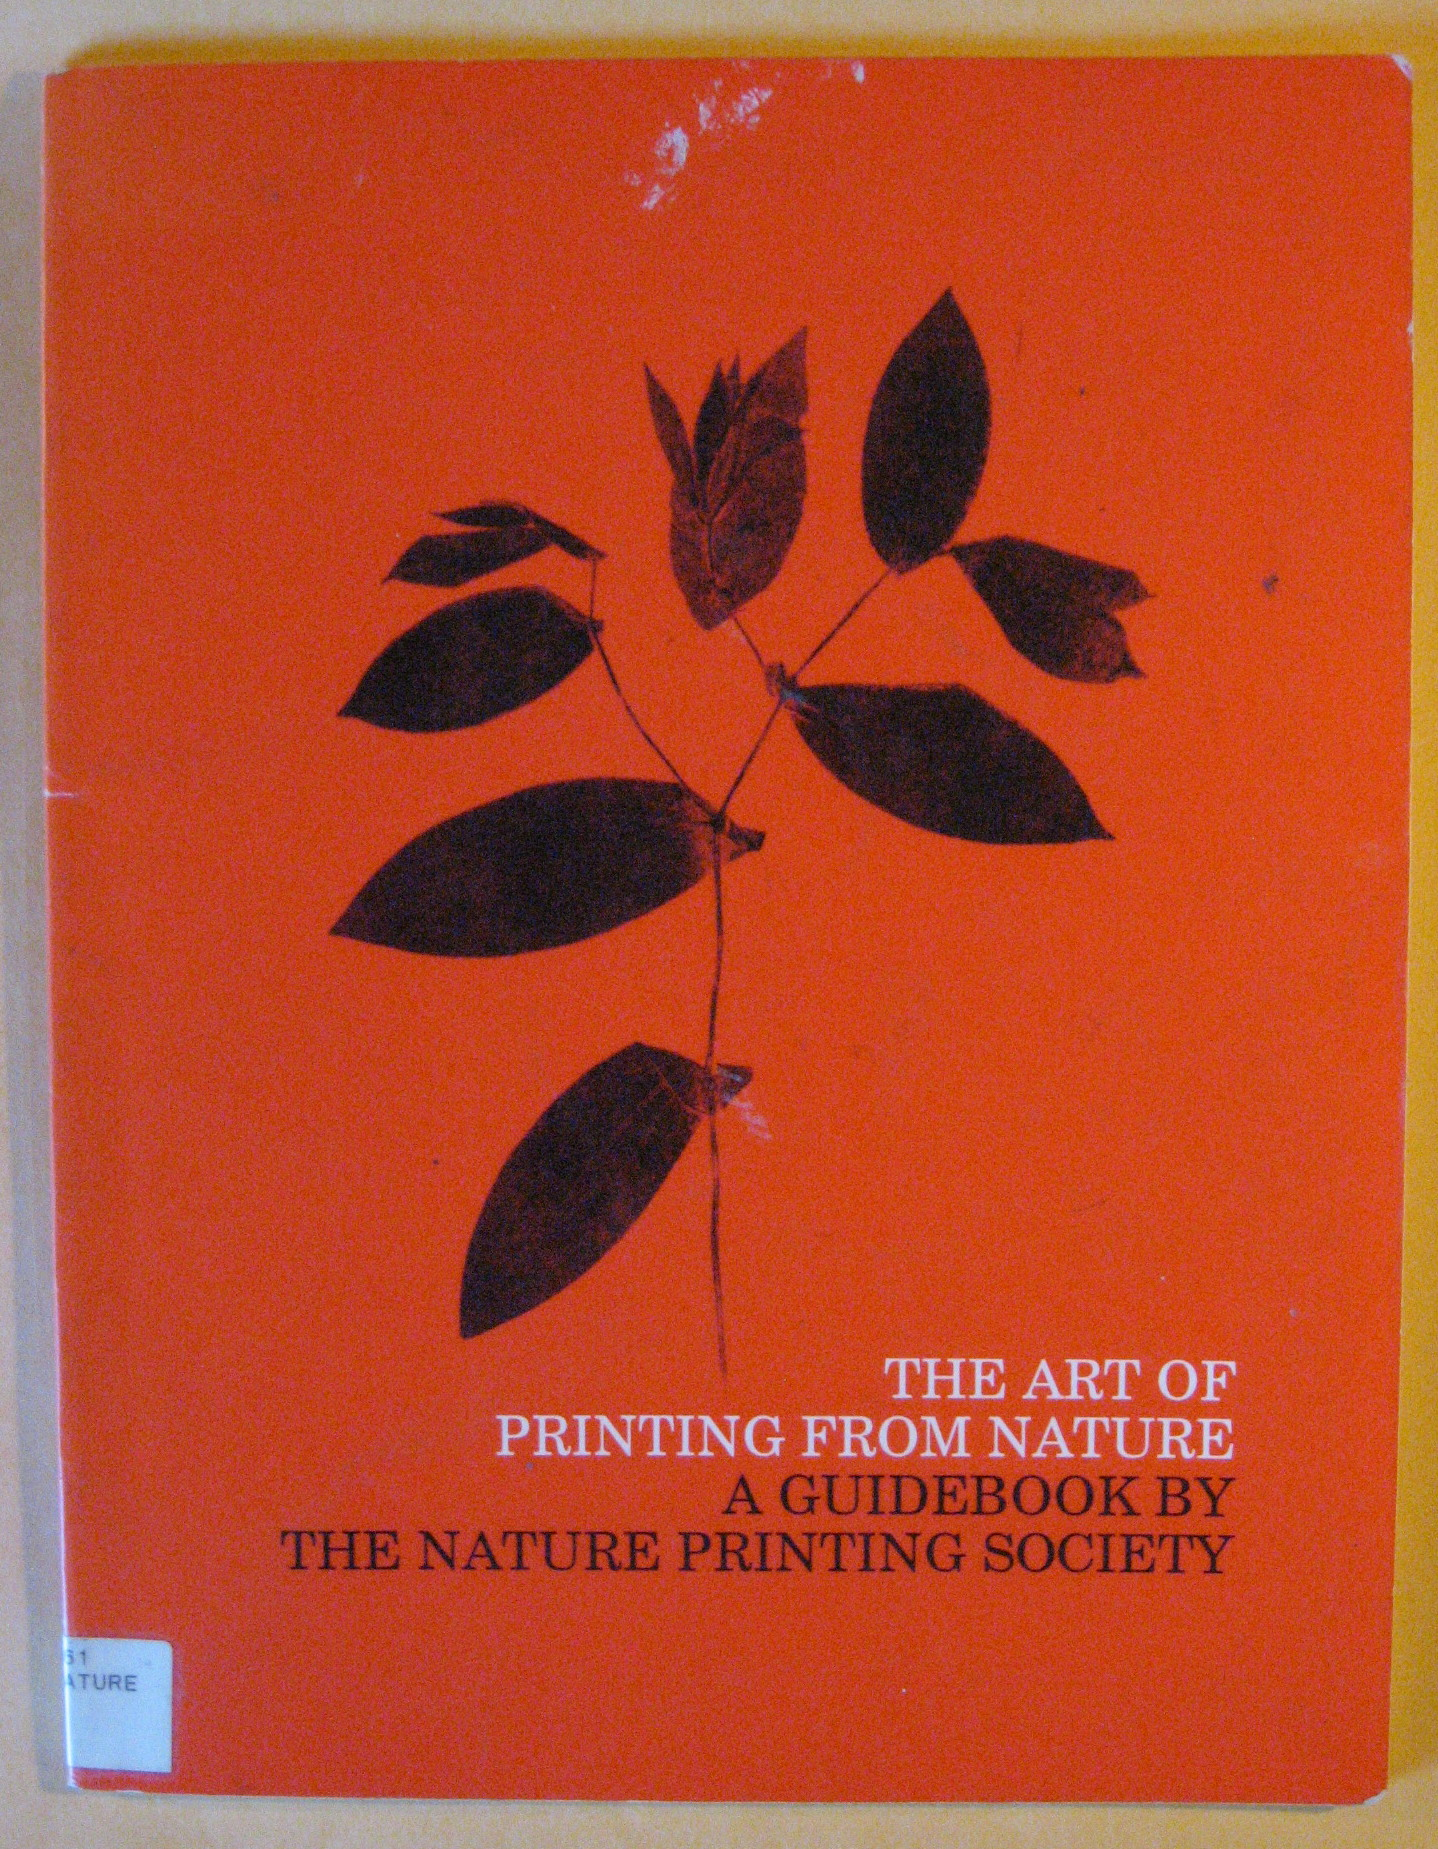 Art of Printing from Nature:  A Guidebook By The Nature Printing Society, The